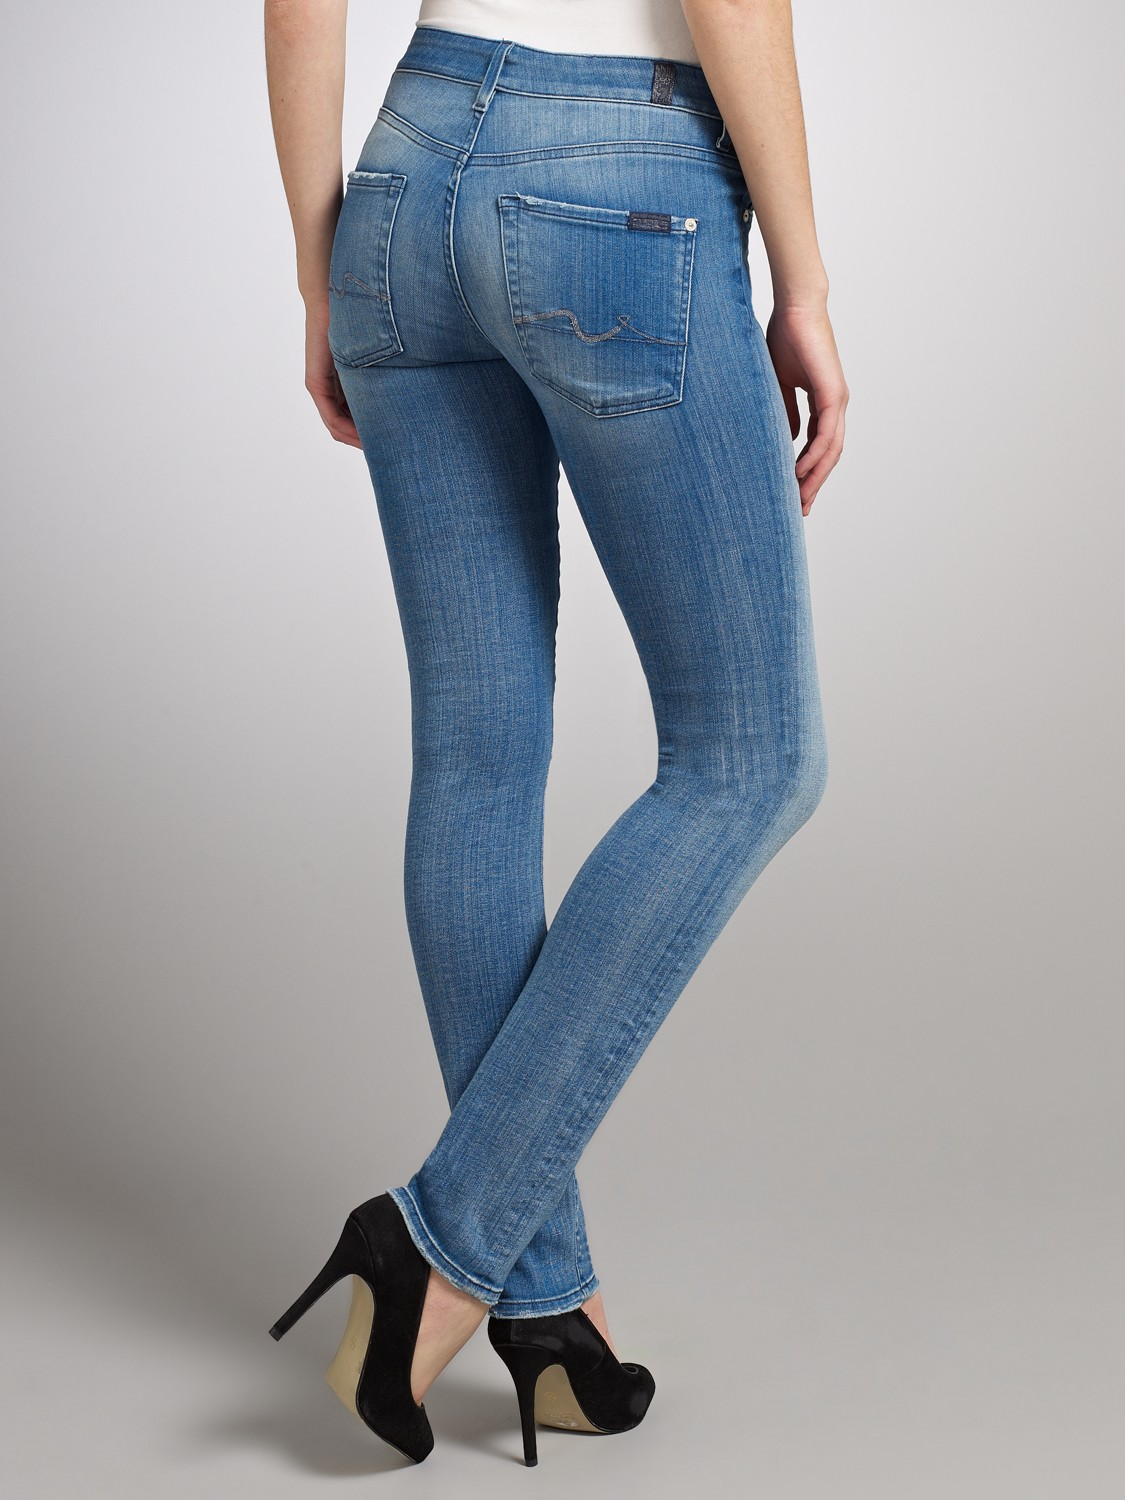 7 for all mankind Cristen Mid Rise Skinny Jeans in Blue | Lyst